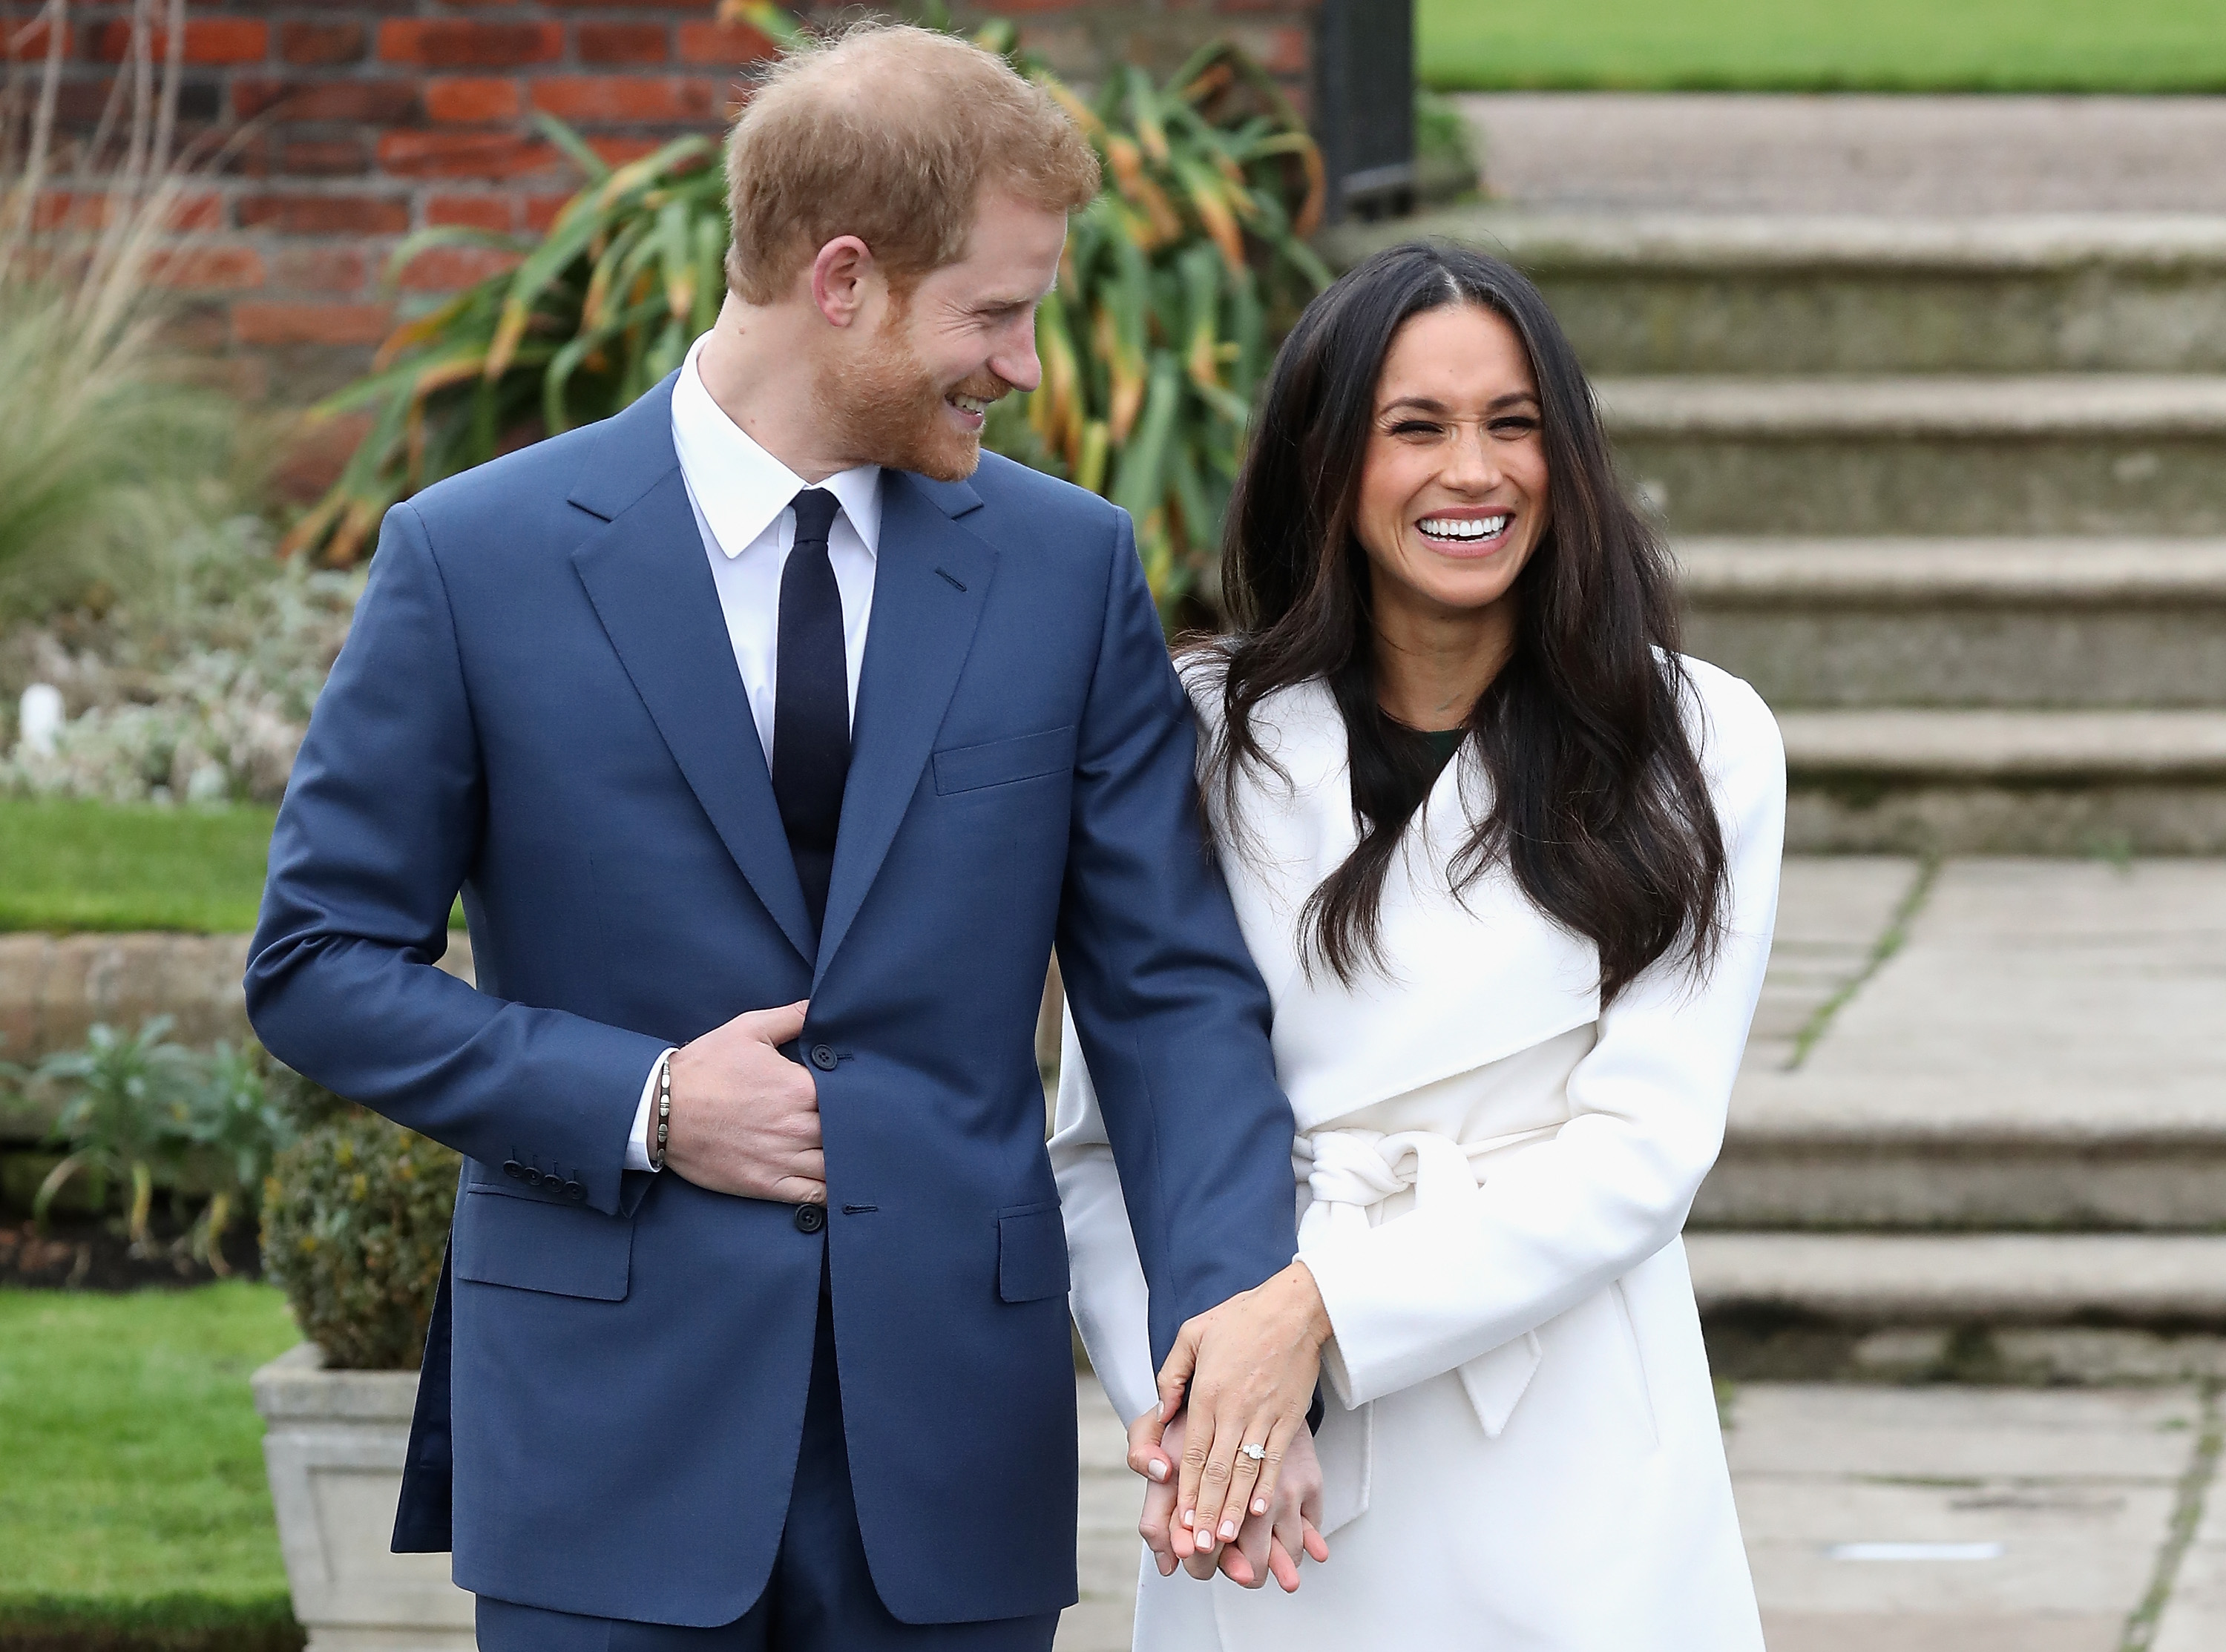 meghan markle s engagement ring cost here s what to know money https money com meghan markle prince harry engagement ring